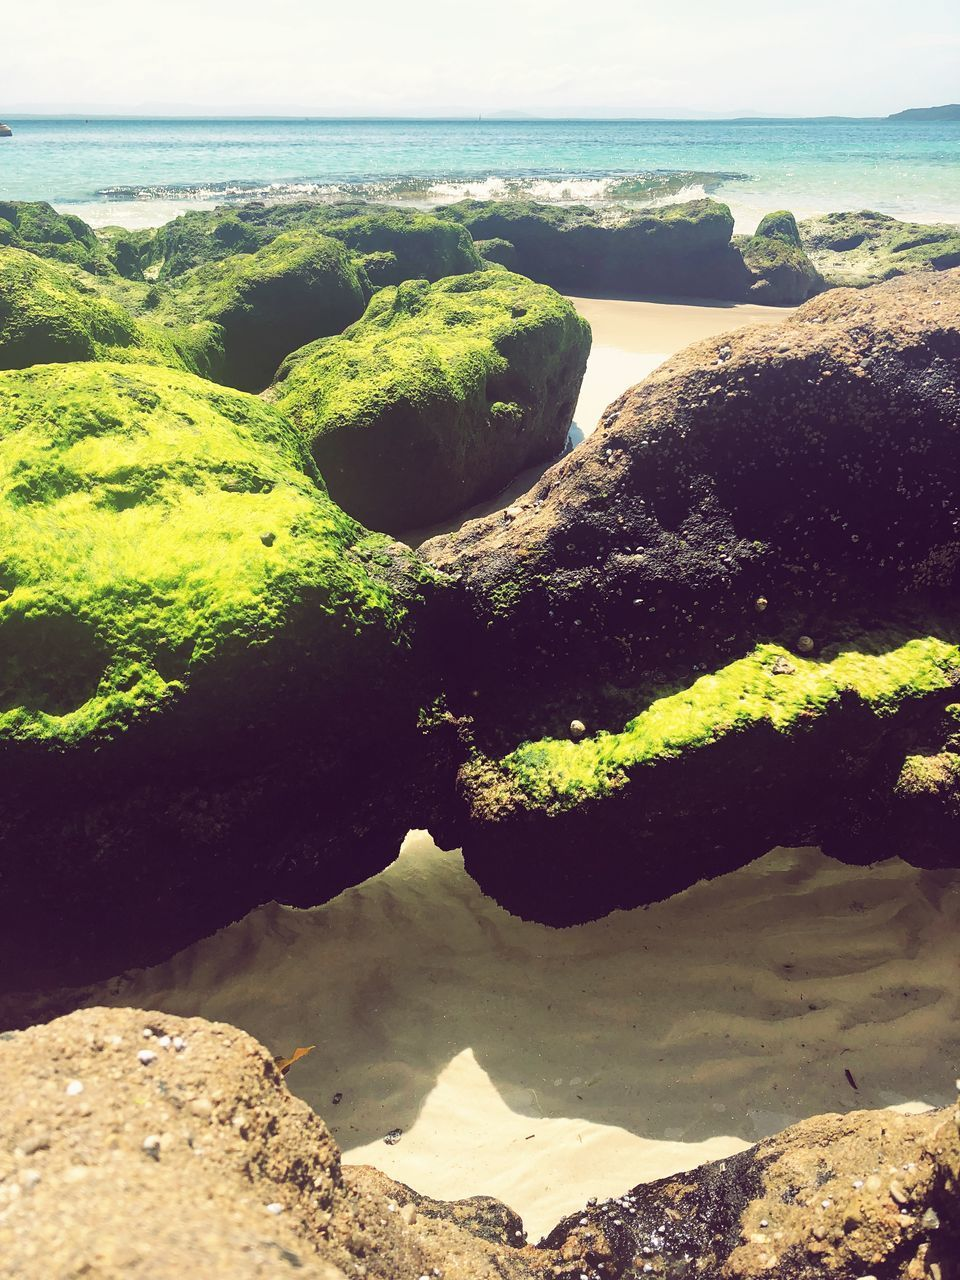 water, sea, rock, beach, nature, land, day, solid, tranquility, scenics - nature, rock - object, no people, beauty in nature, tranquil scene, sky, horizon, moss, horizon over water, sunlight, outdoors